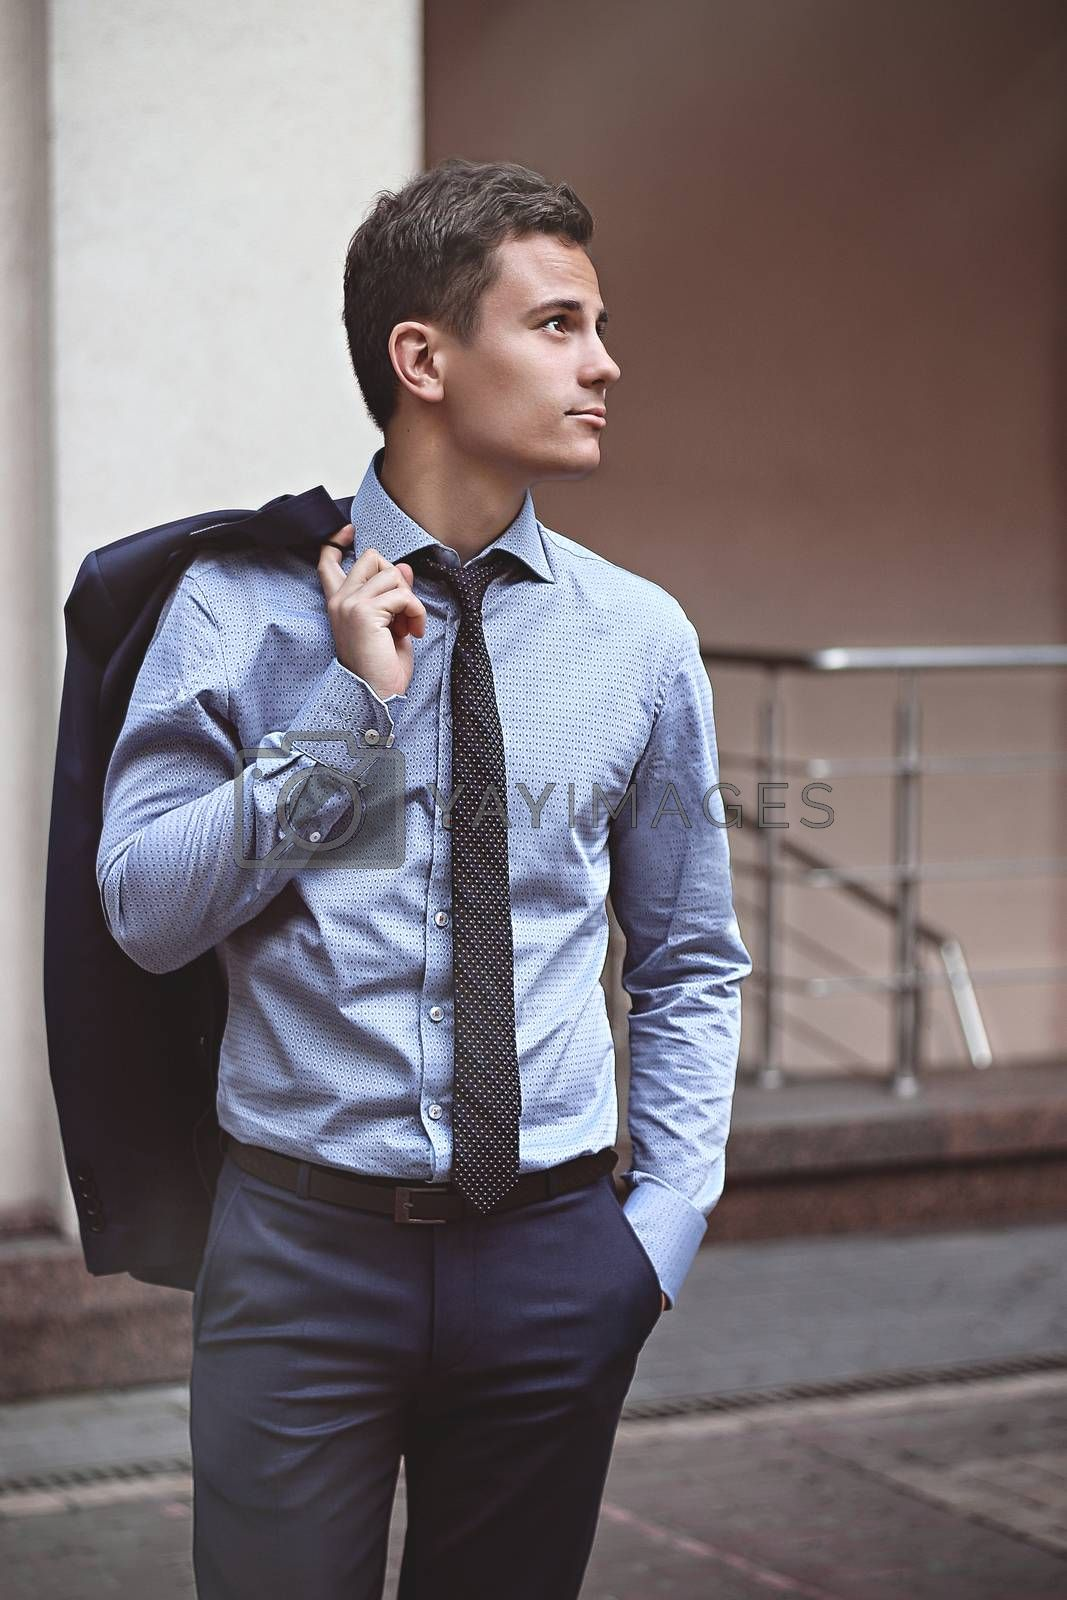 Proud businessman standing in the street looking up